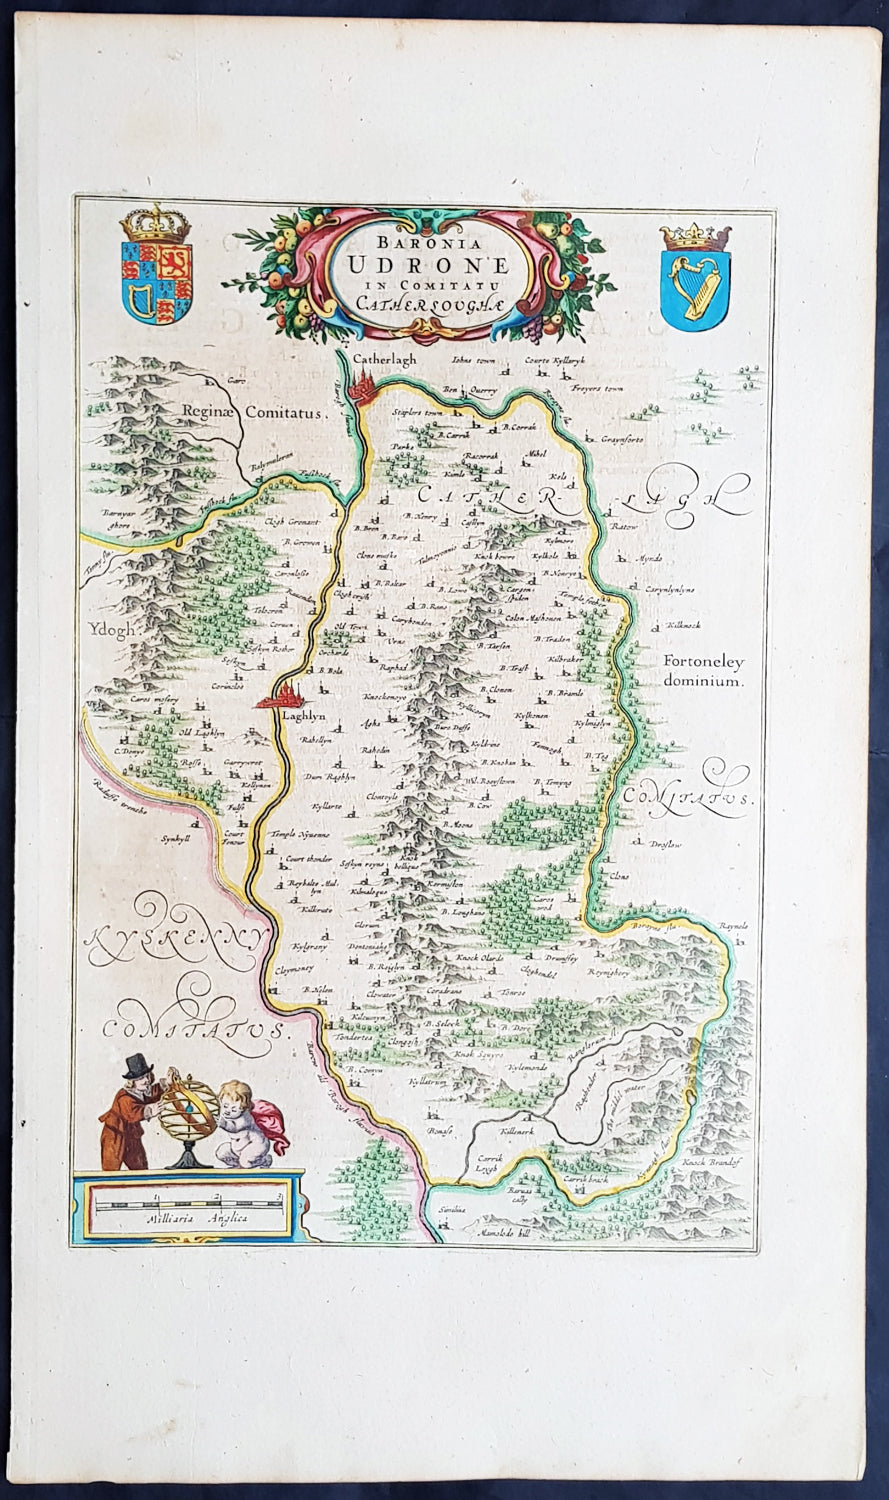 1658 Joan Blaeu Antique Map Of The Barony Of Idrone County Carlow